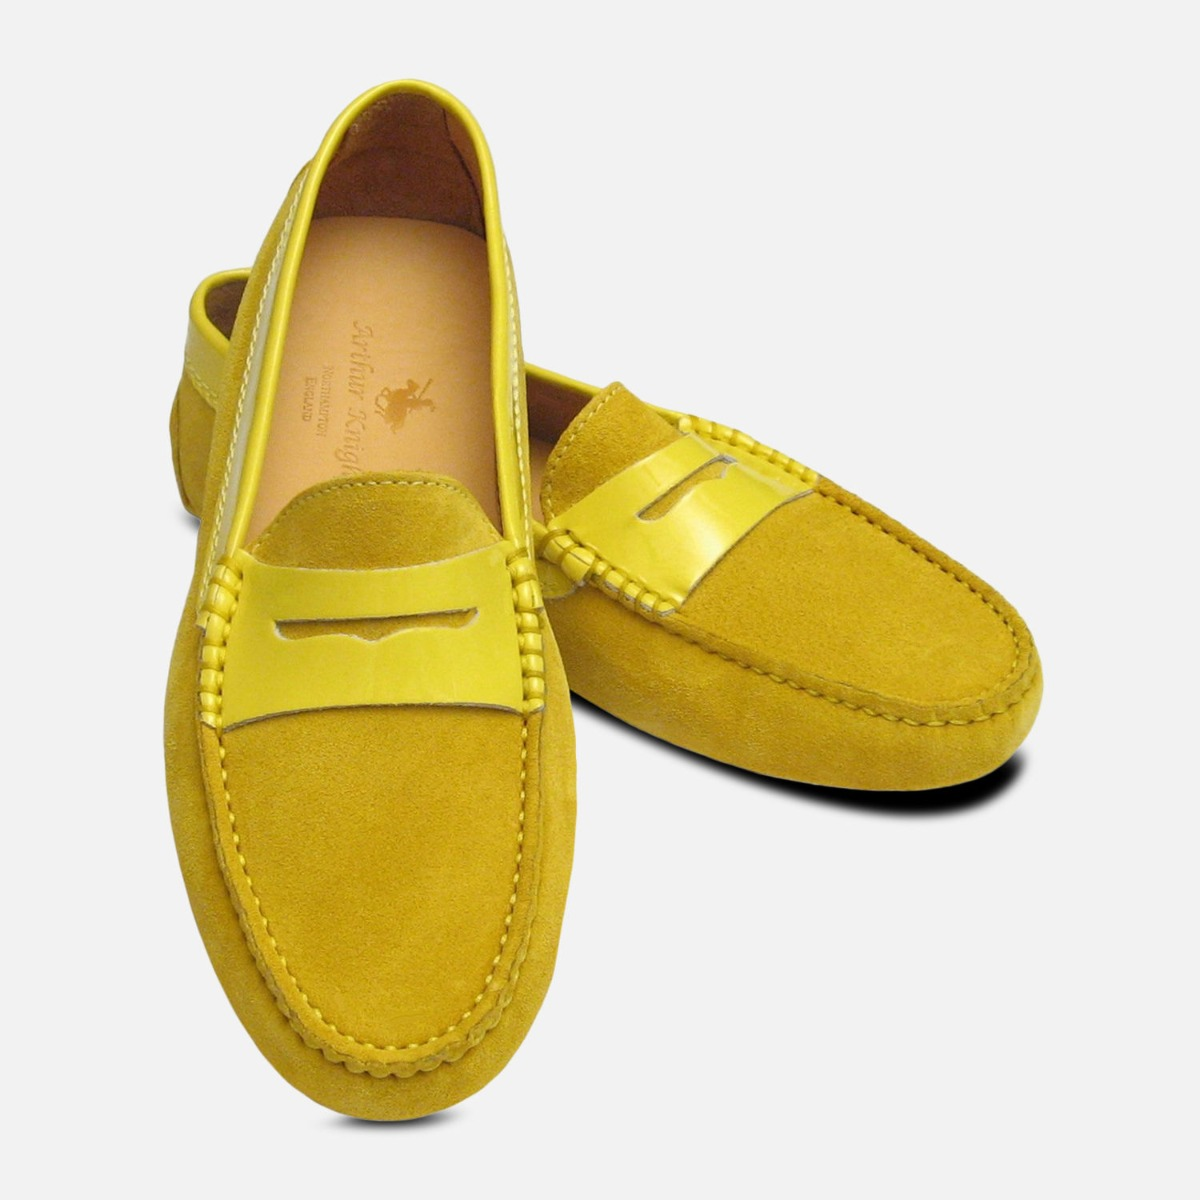 Mustard Yellow Suede \u0026 Patent Leather